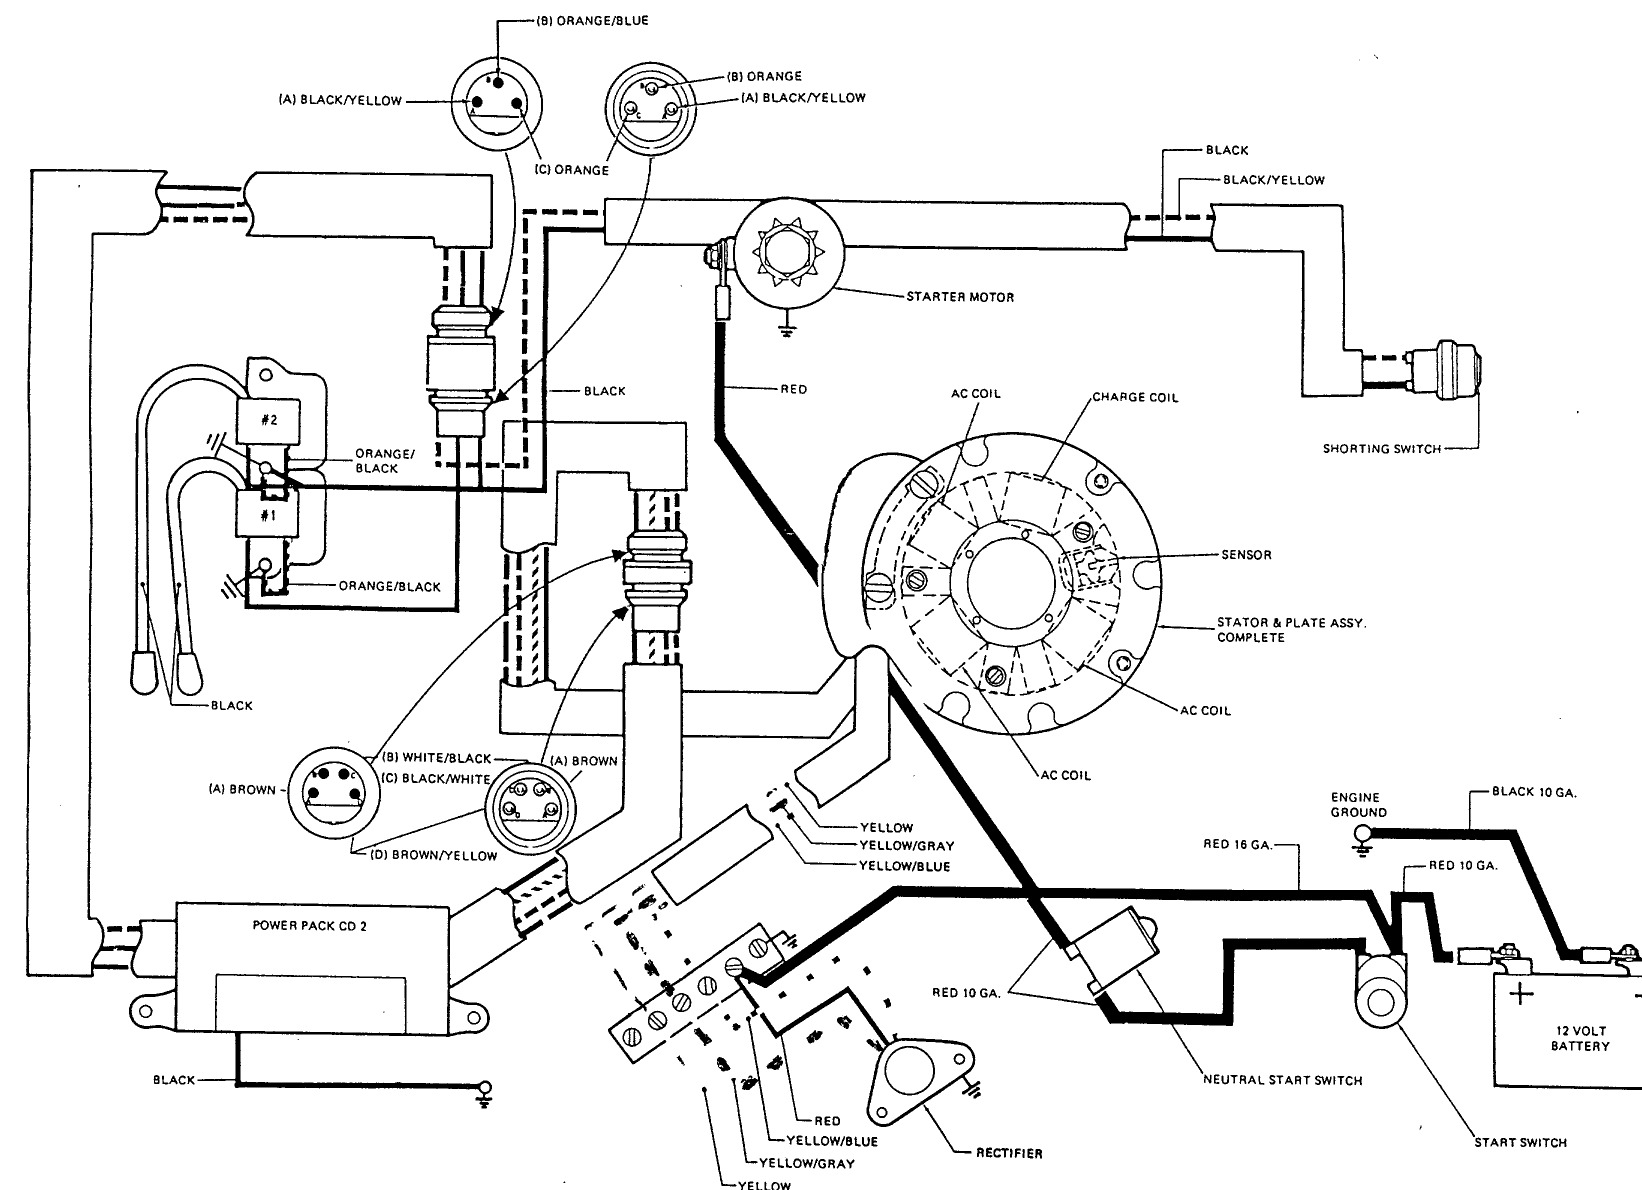 Old Volvo Penta Engine Schematics Real Wiring Diagram Maintaining Johnson Evinrude 9 Outdrive Diagrams Parts Catalog